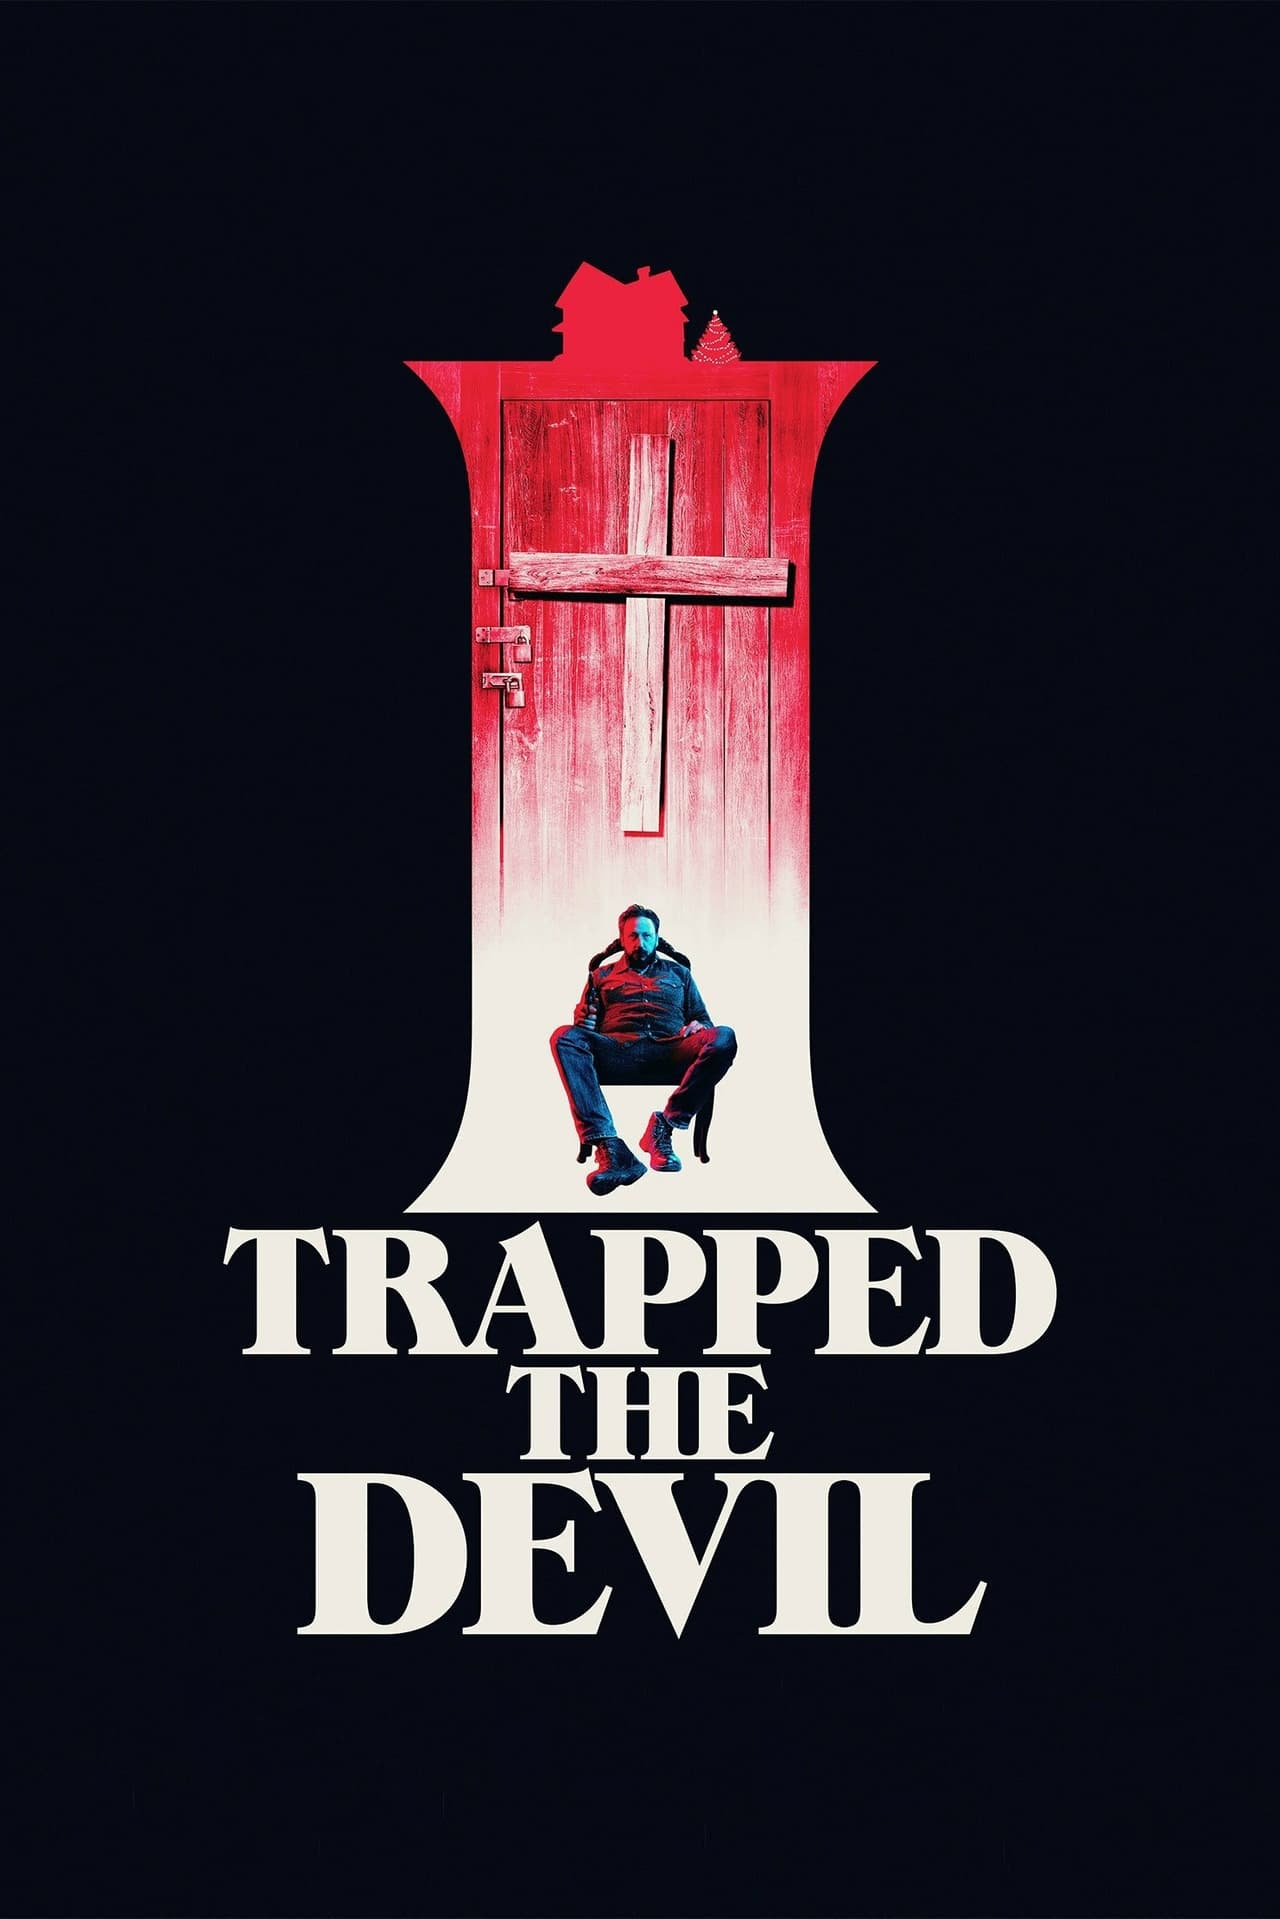 I Trapped The Devil image